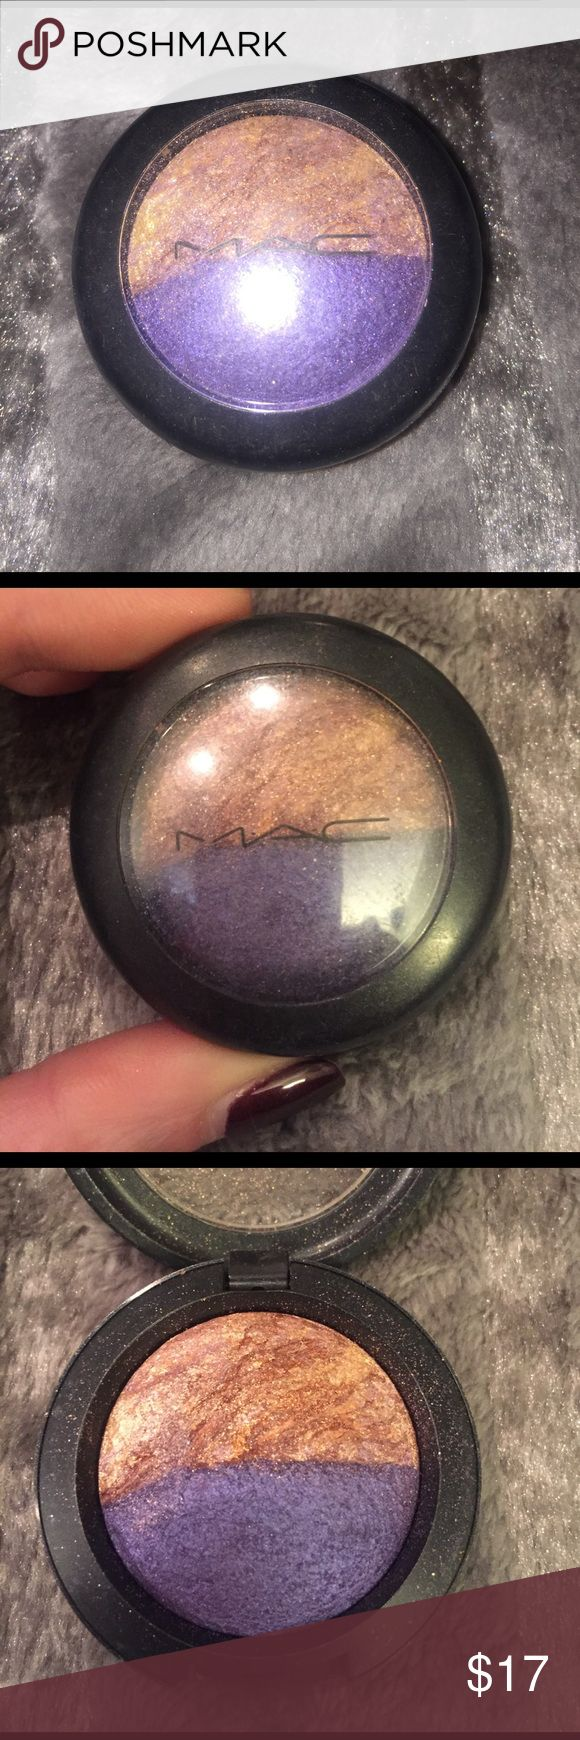 "Mac mineralize eyeshadow duo In the color ""odd couple"